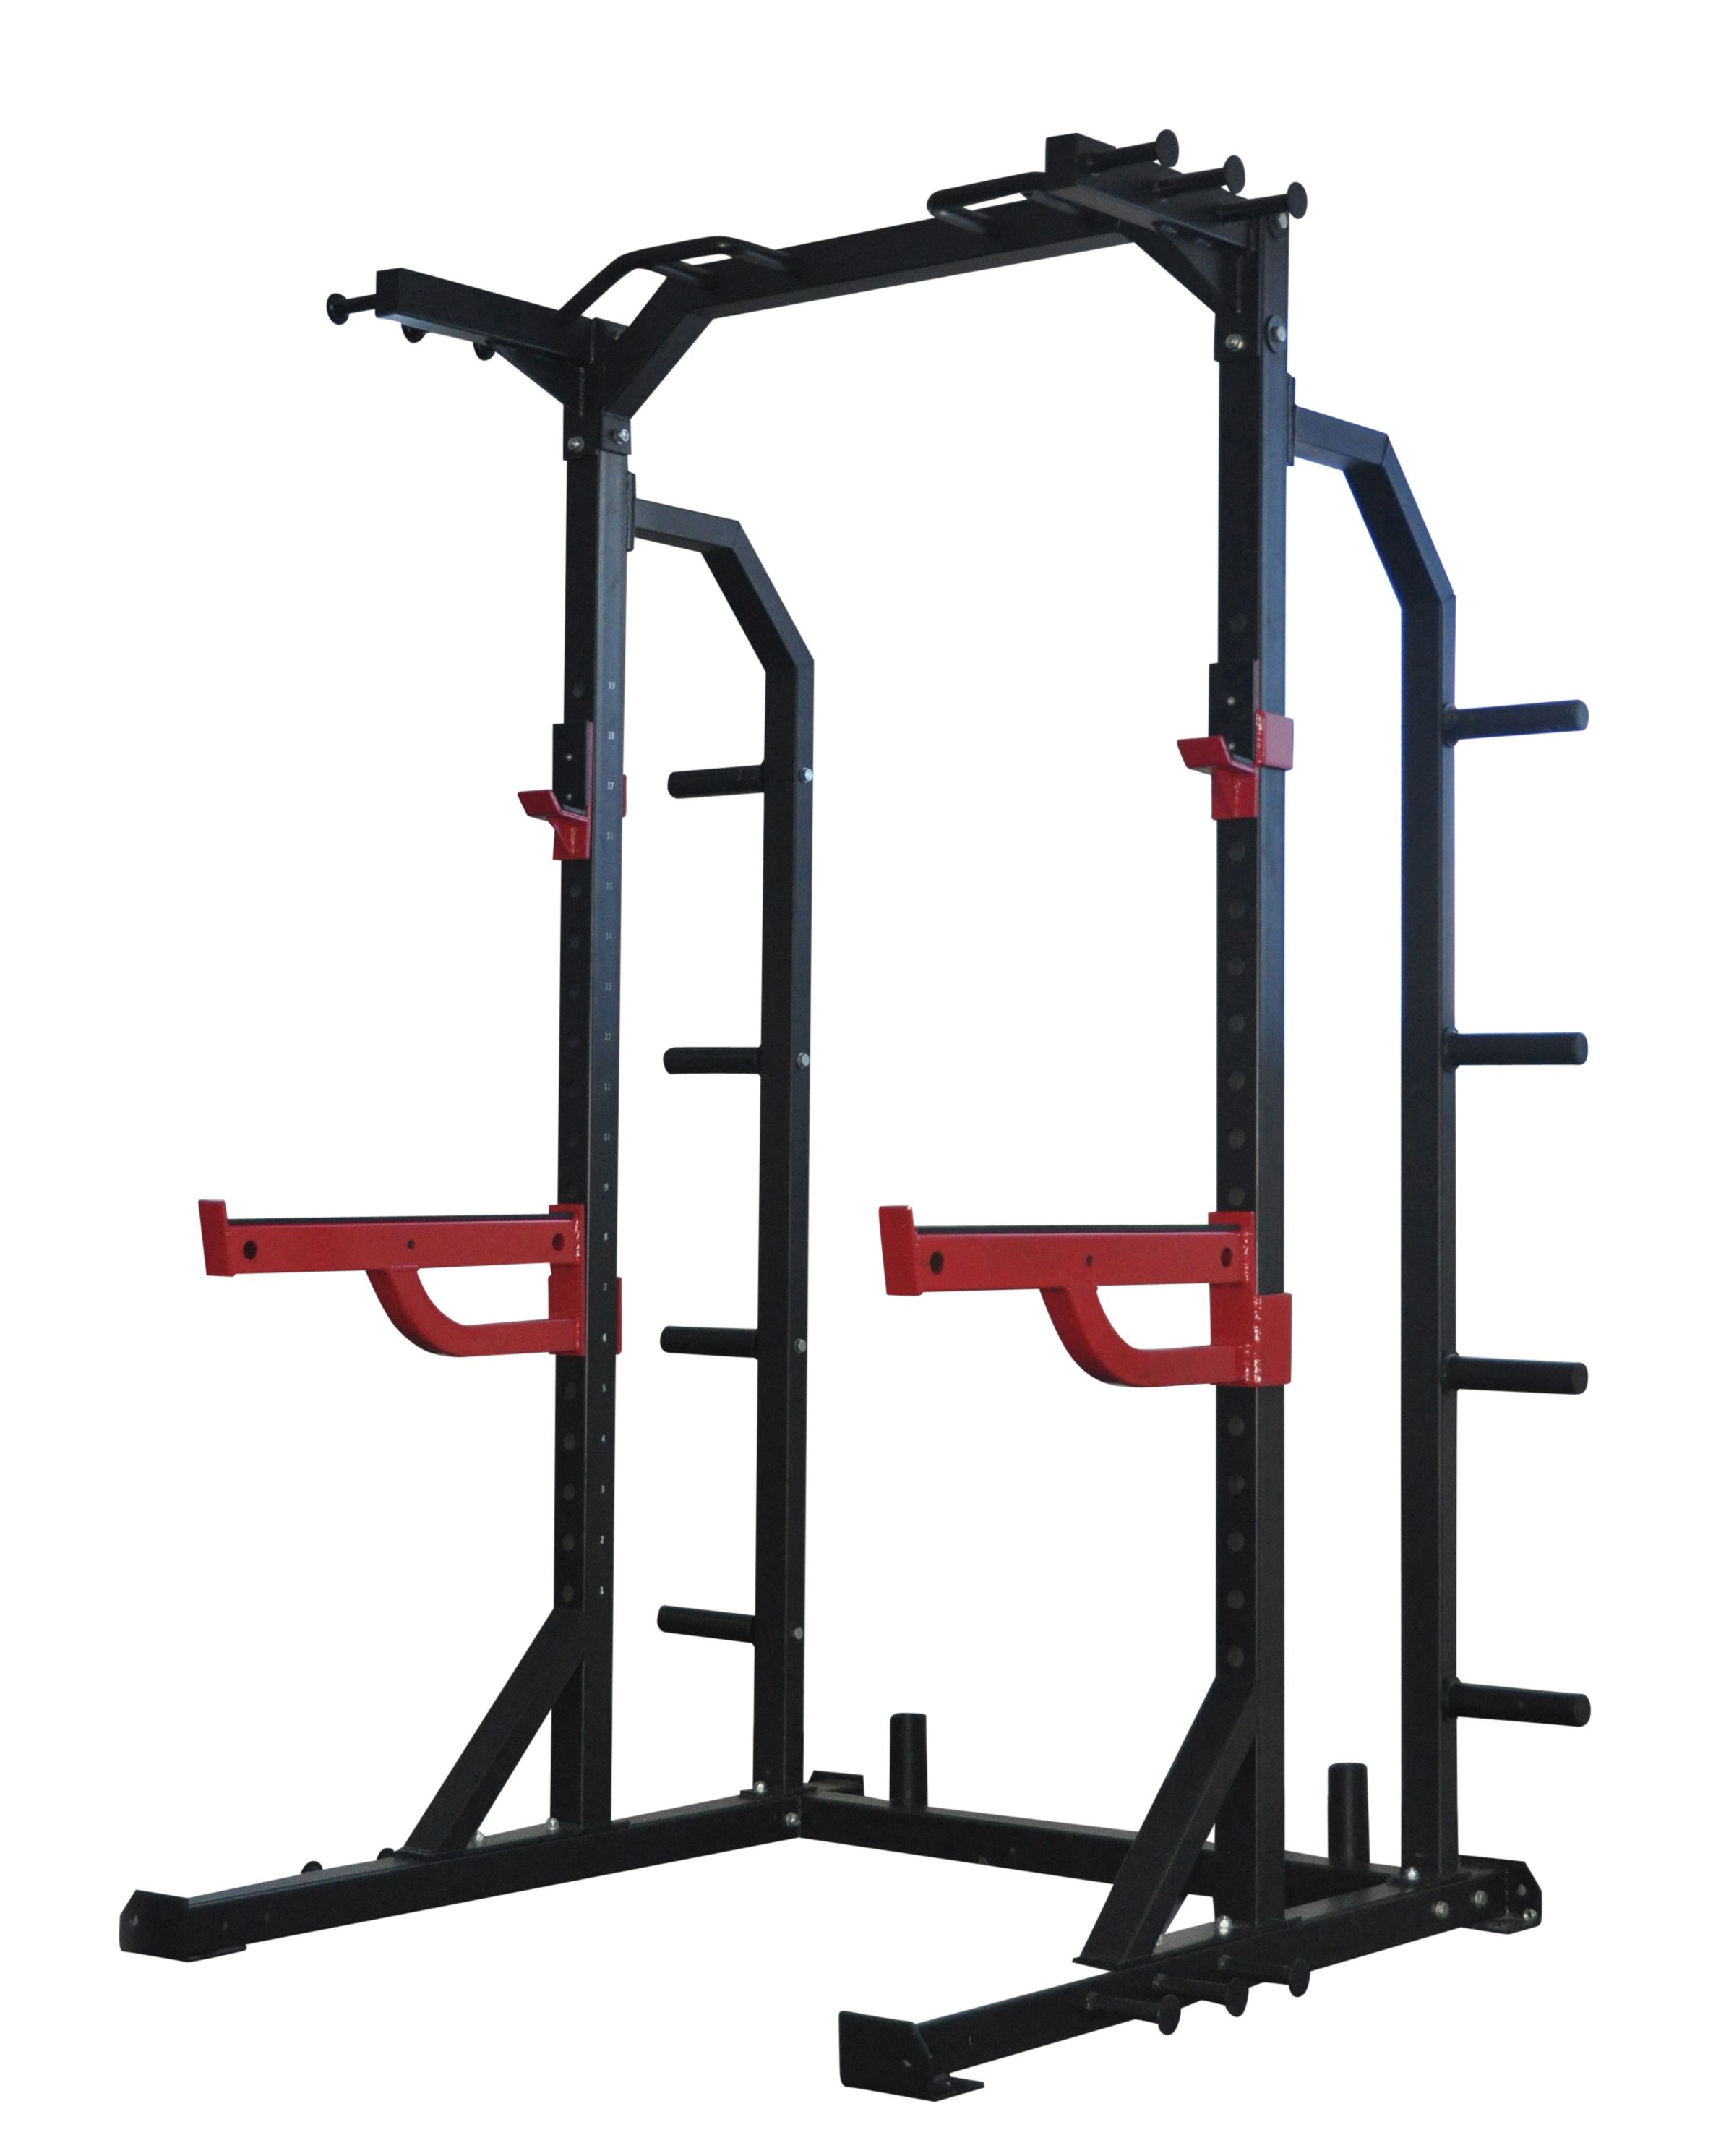 Garage Gym Half Rack Power Racks Smith Machines Bodyworx Hd Half Rack L870hr